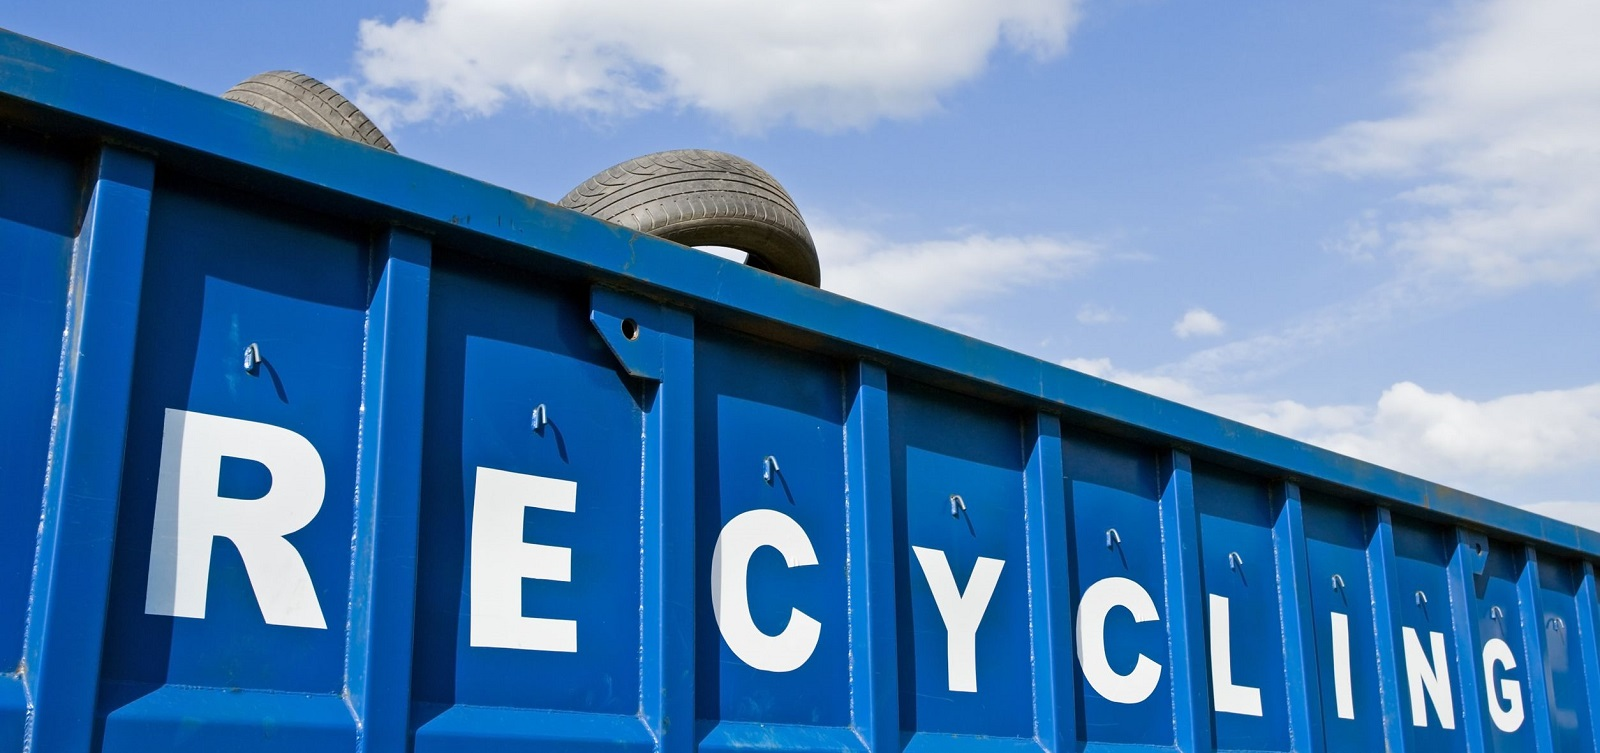 7712174 - tire recycling container over blue sky